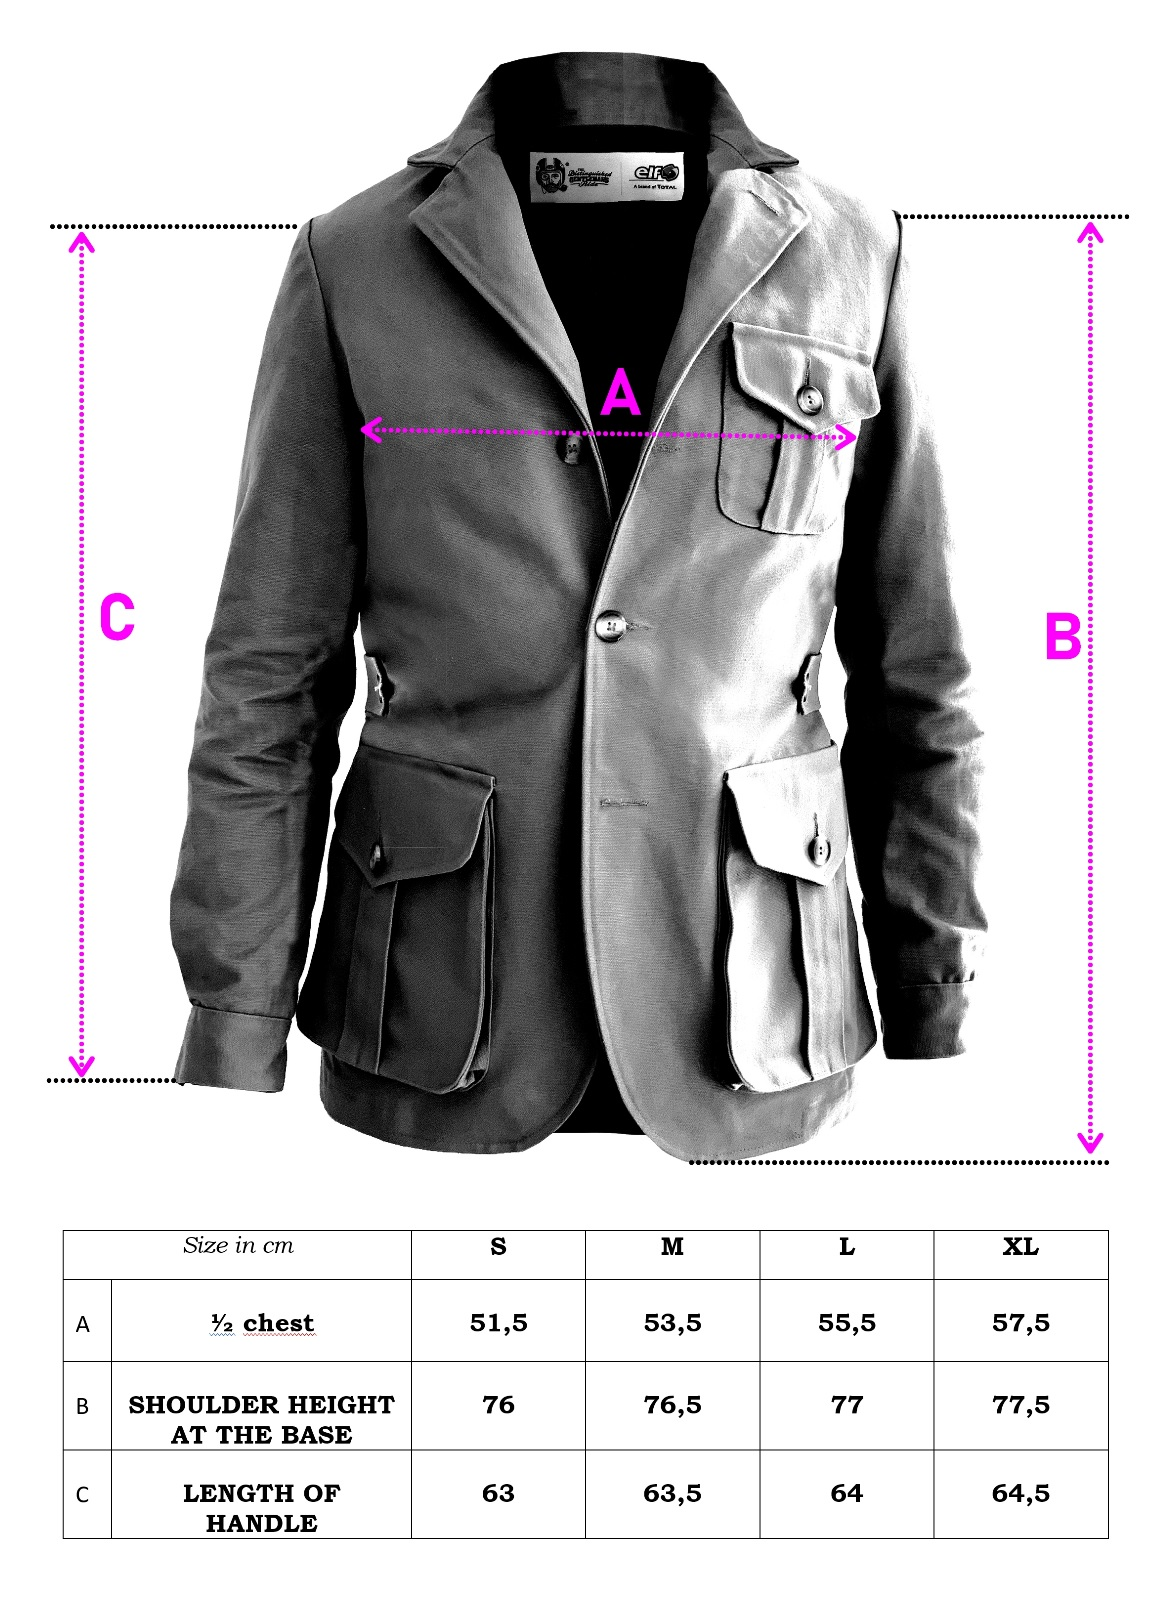 SIZE GUIDE DGR JACKET ELF